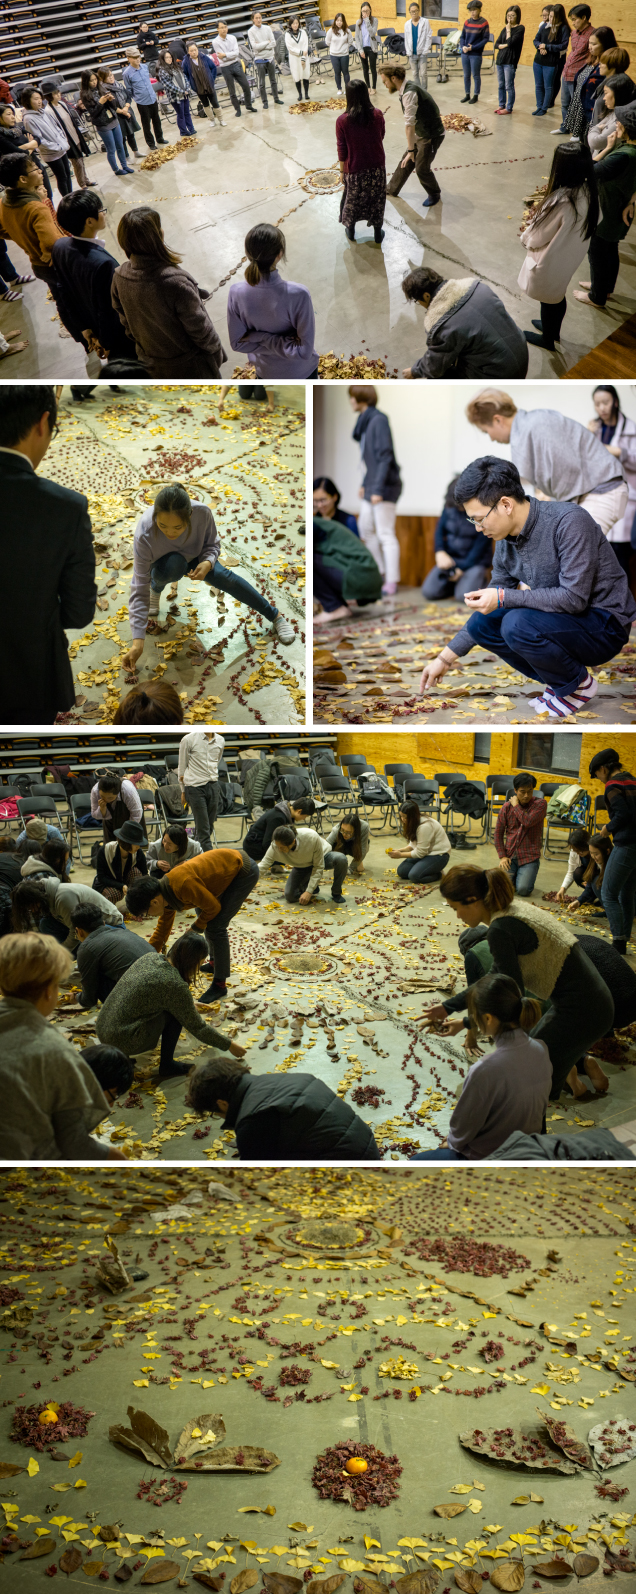 Images from our Nature Mandala workshop at Seoul Youth Hub in South Korea (Image courtesy of Seoul Youth Hub and SocieCity)